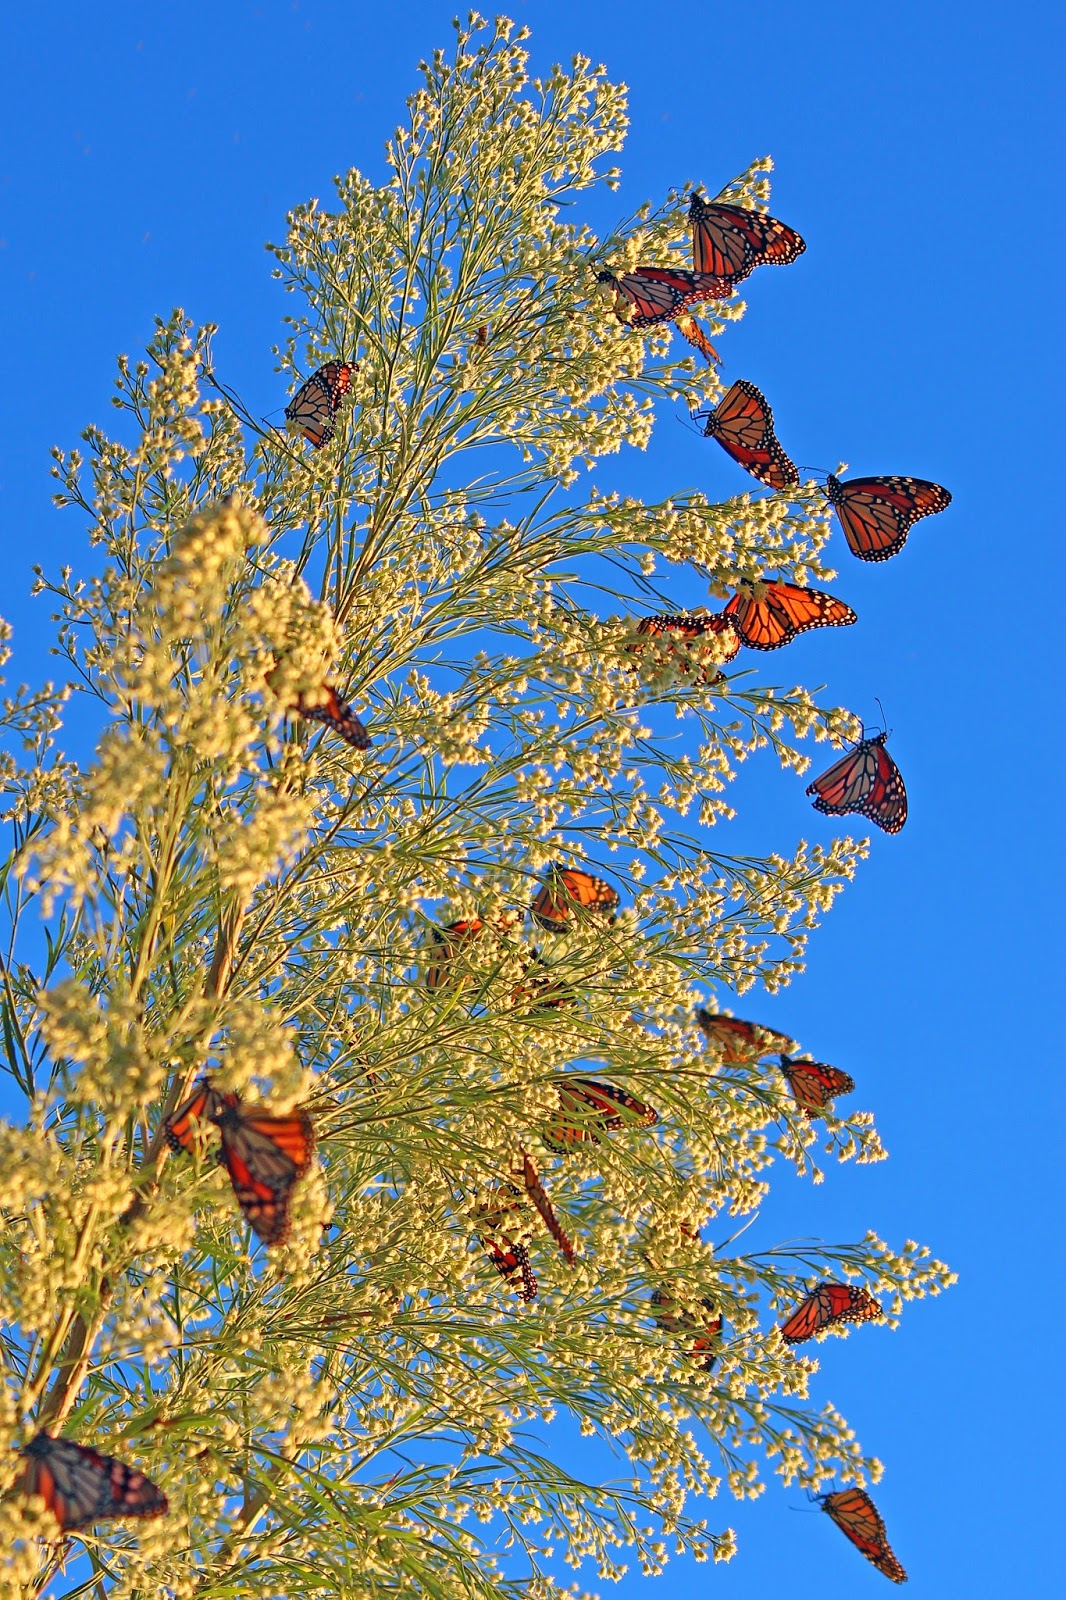 Monarch butterfly migration tree - photo#17